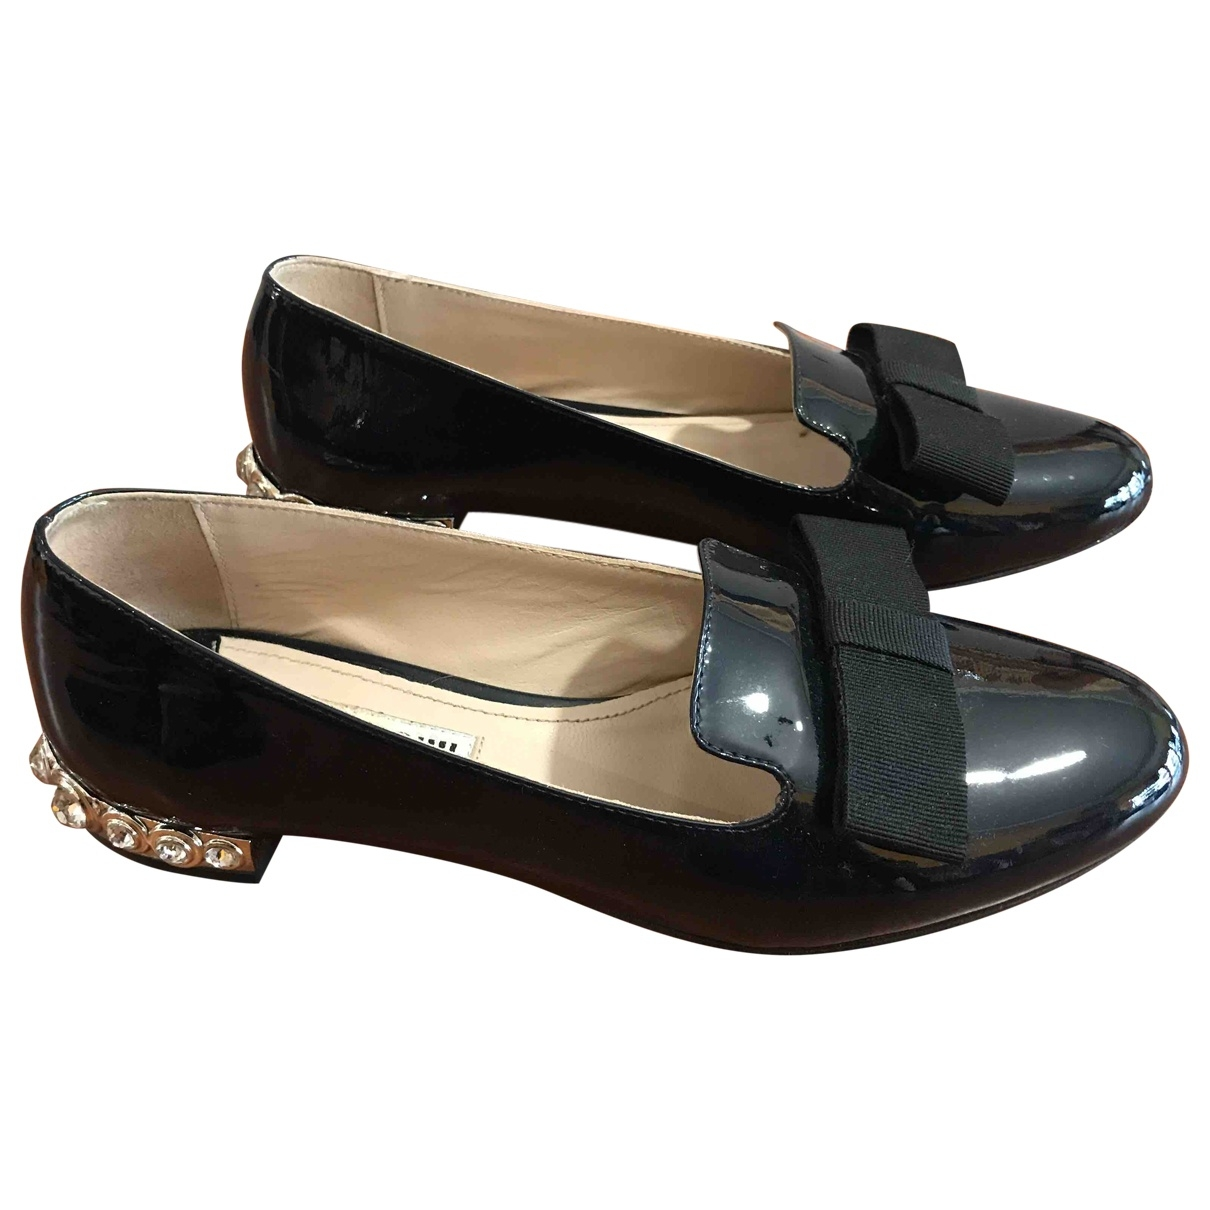 Miu Miu \N Blue Patent leather Flats for Women 35.5 EU